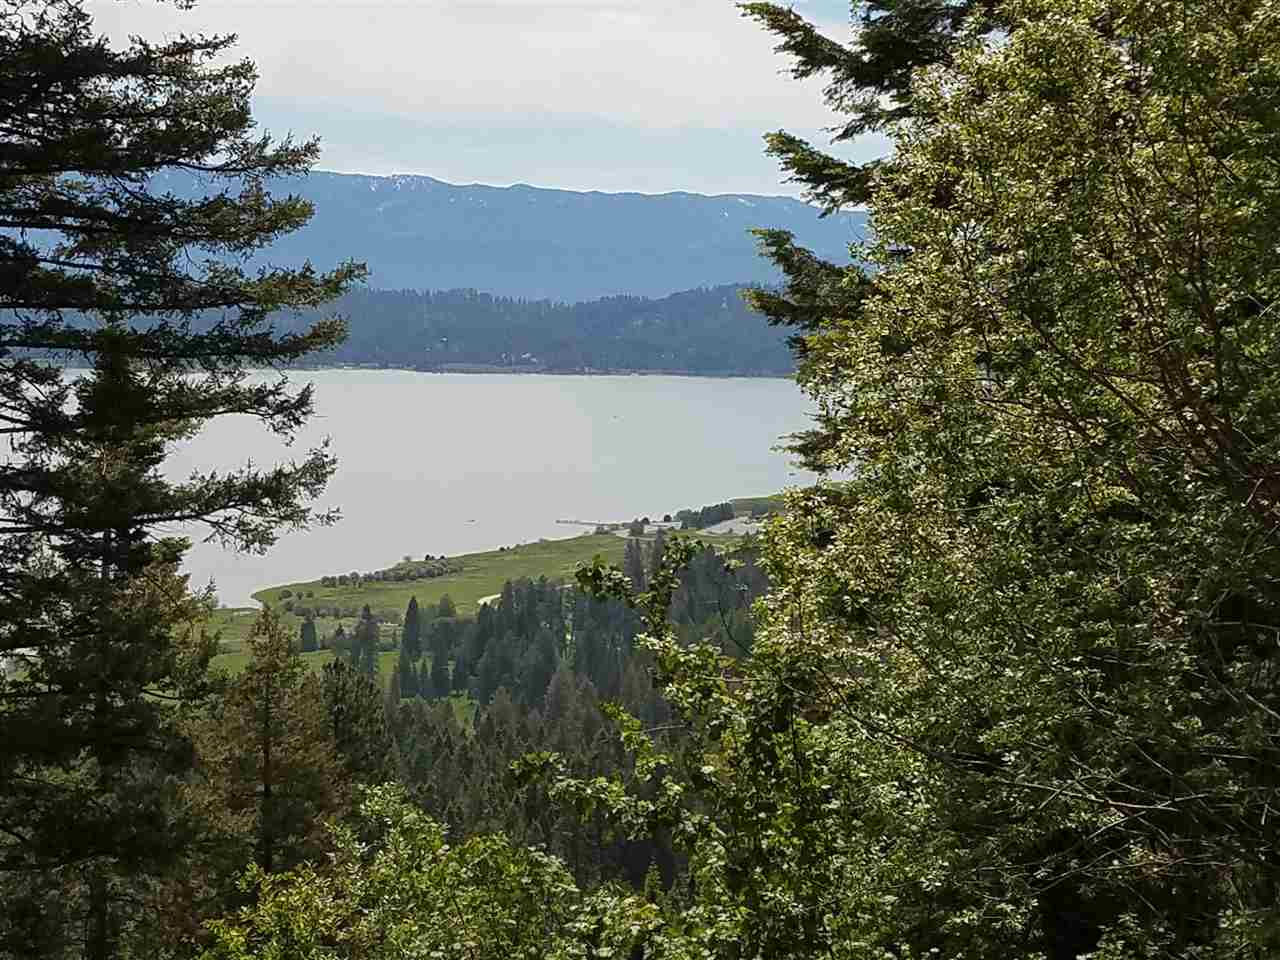 Recreational Property for Sale at Anderson Creek & West Mountain Anderson Creek & West Mountain Cascade, Idaho 83611